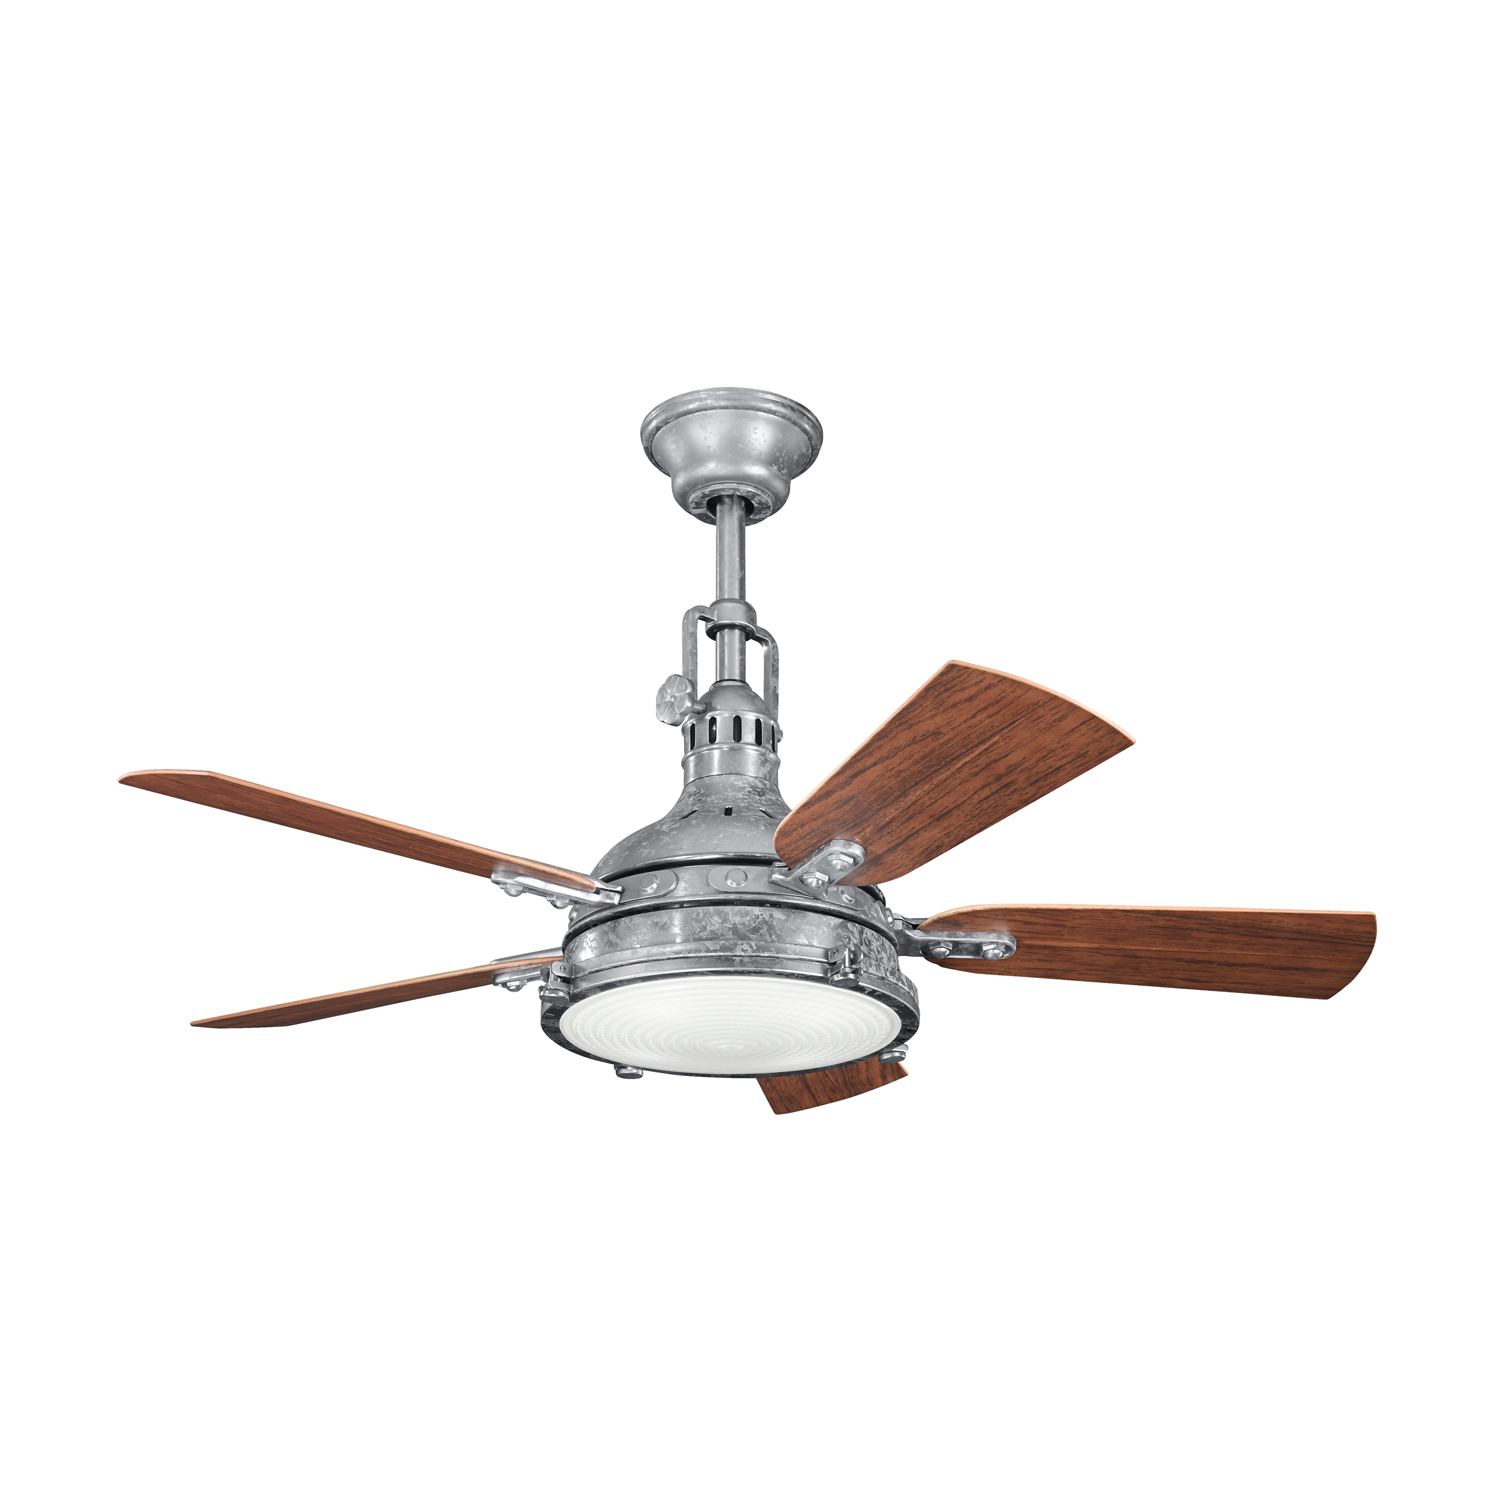 44 inchCeiling Fan from the Patio collection by Kichler 310101GST